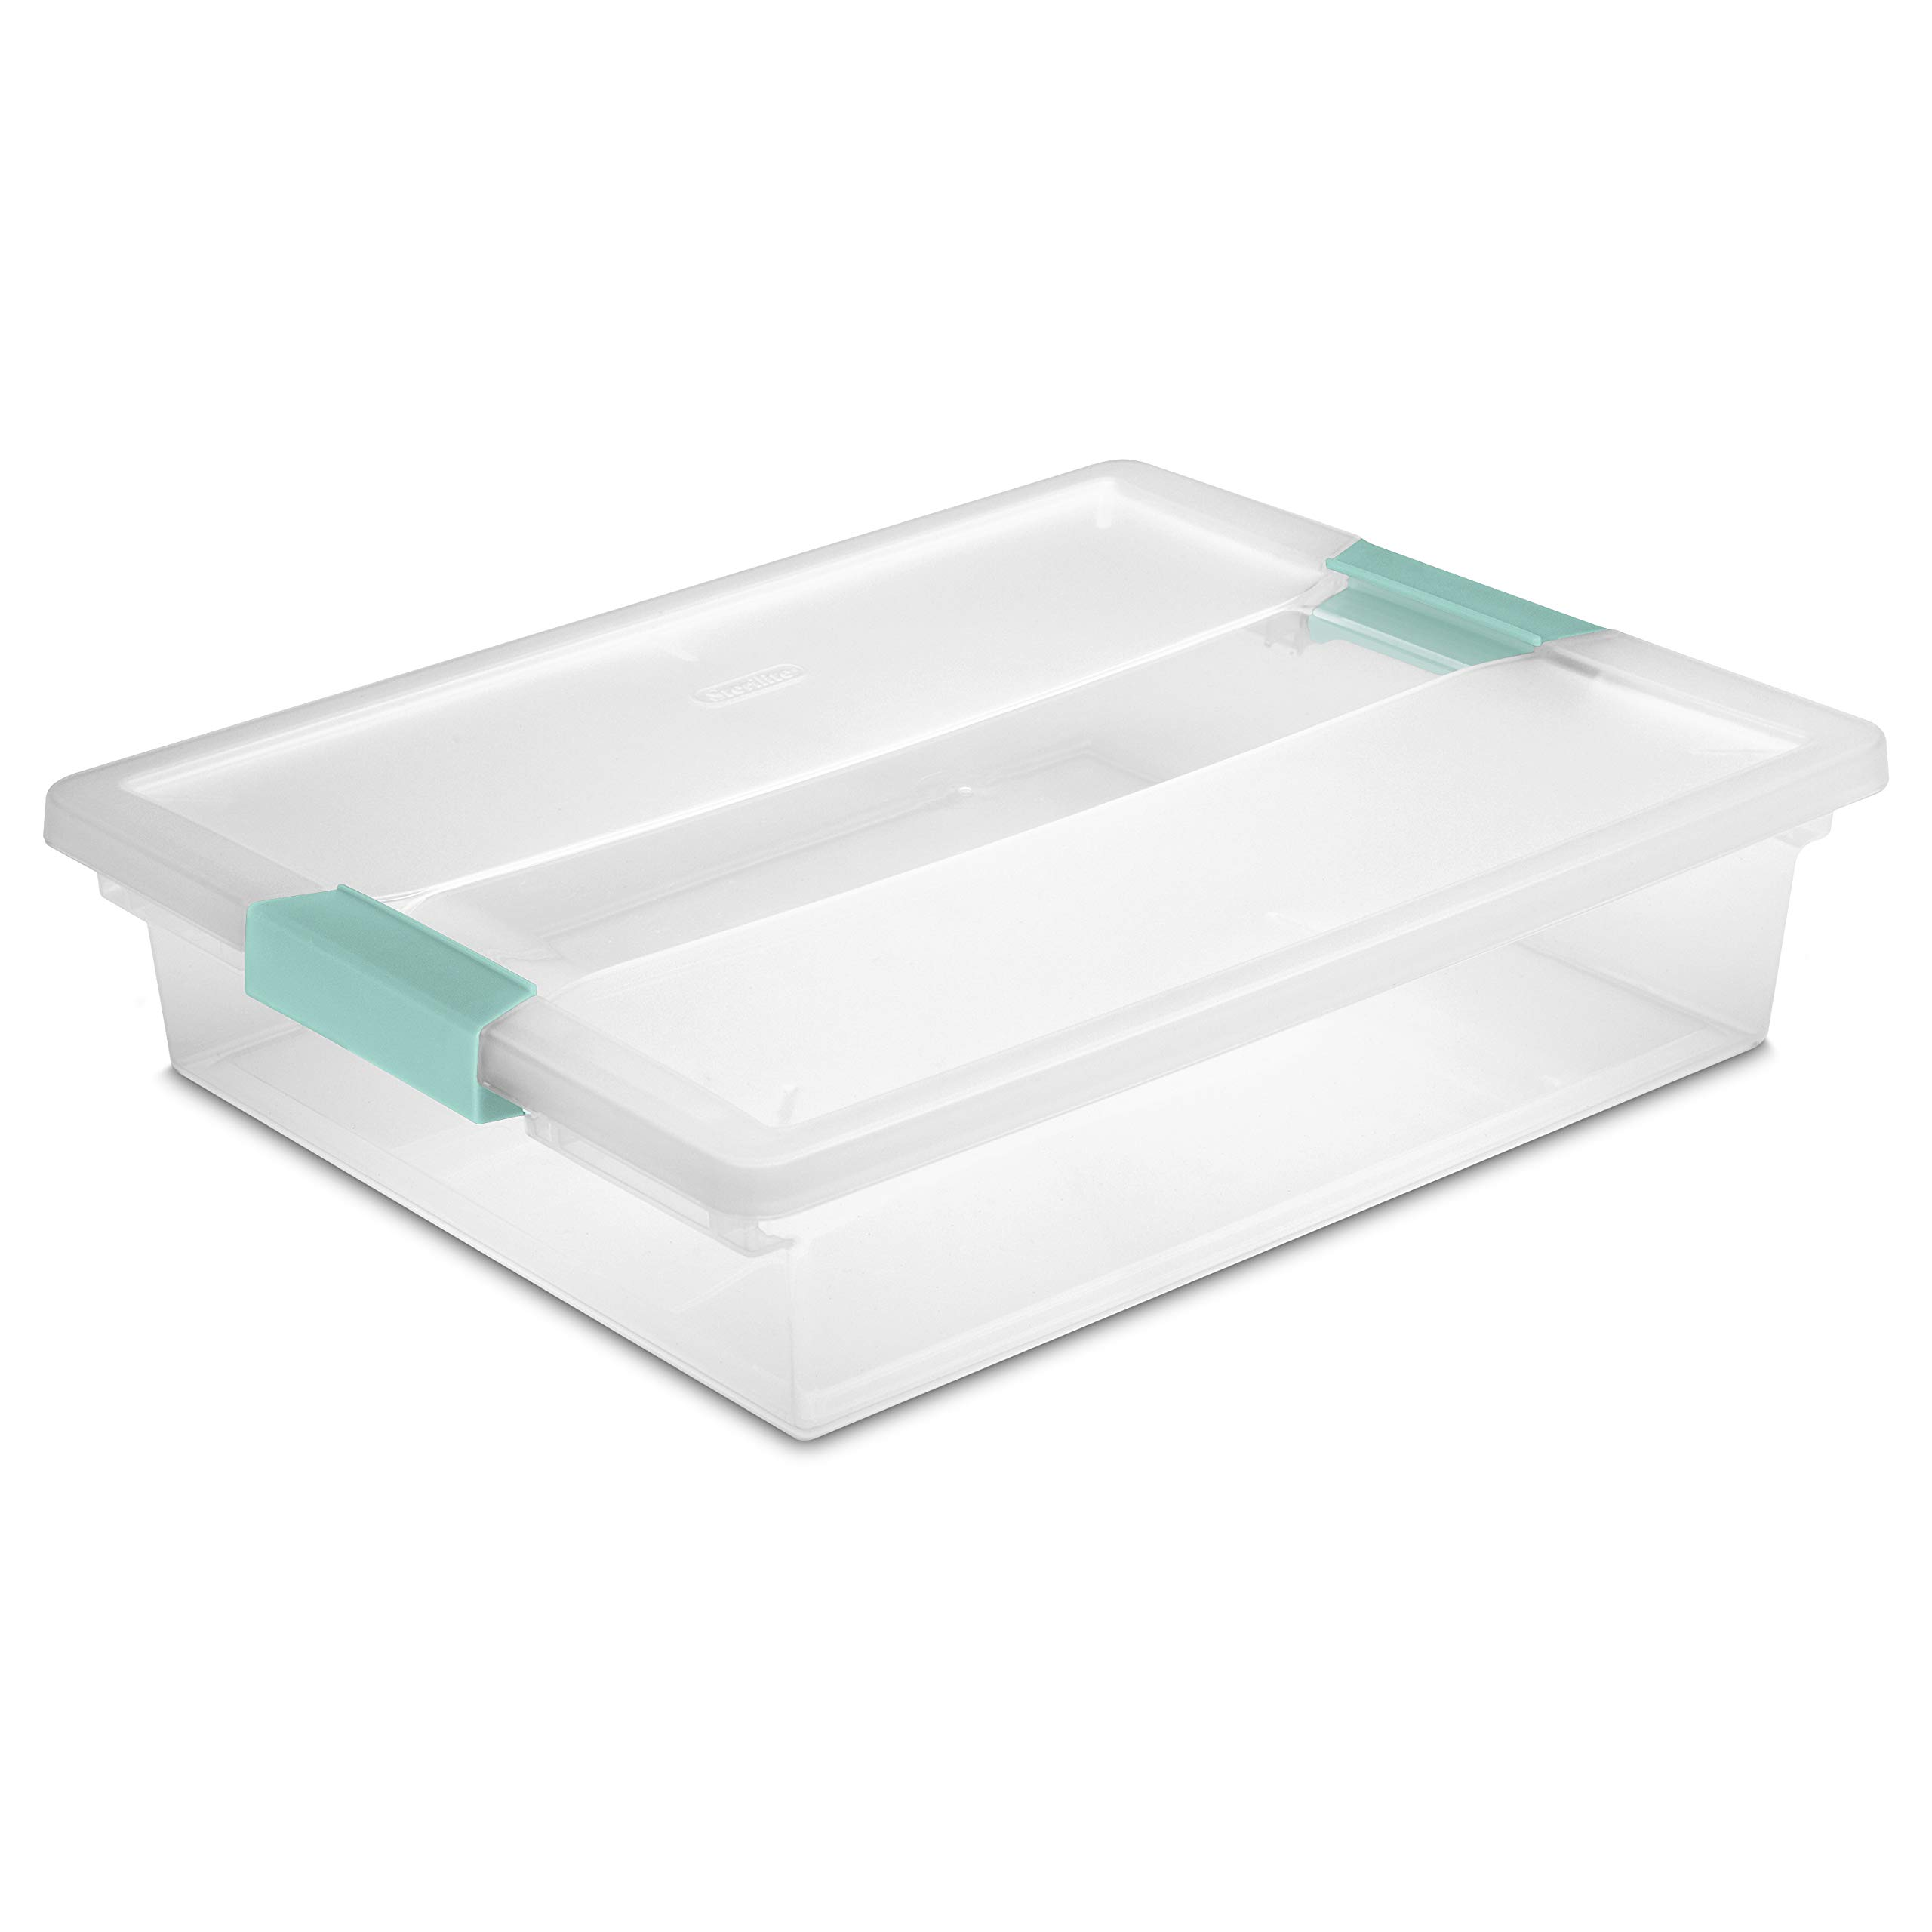 Sterilite 19638606 Large Clip Box, Clear with Blue Aquarium Latches, 6-Pack by STERILITE